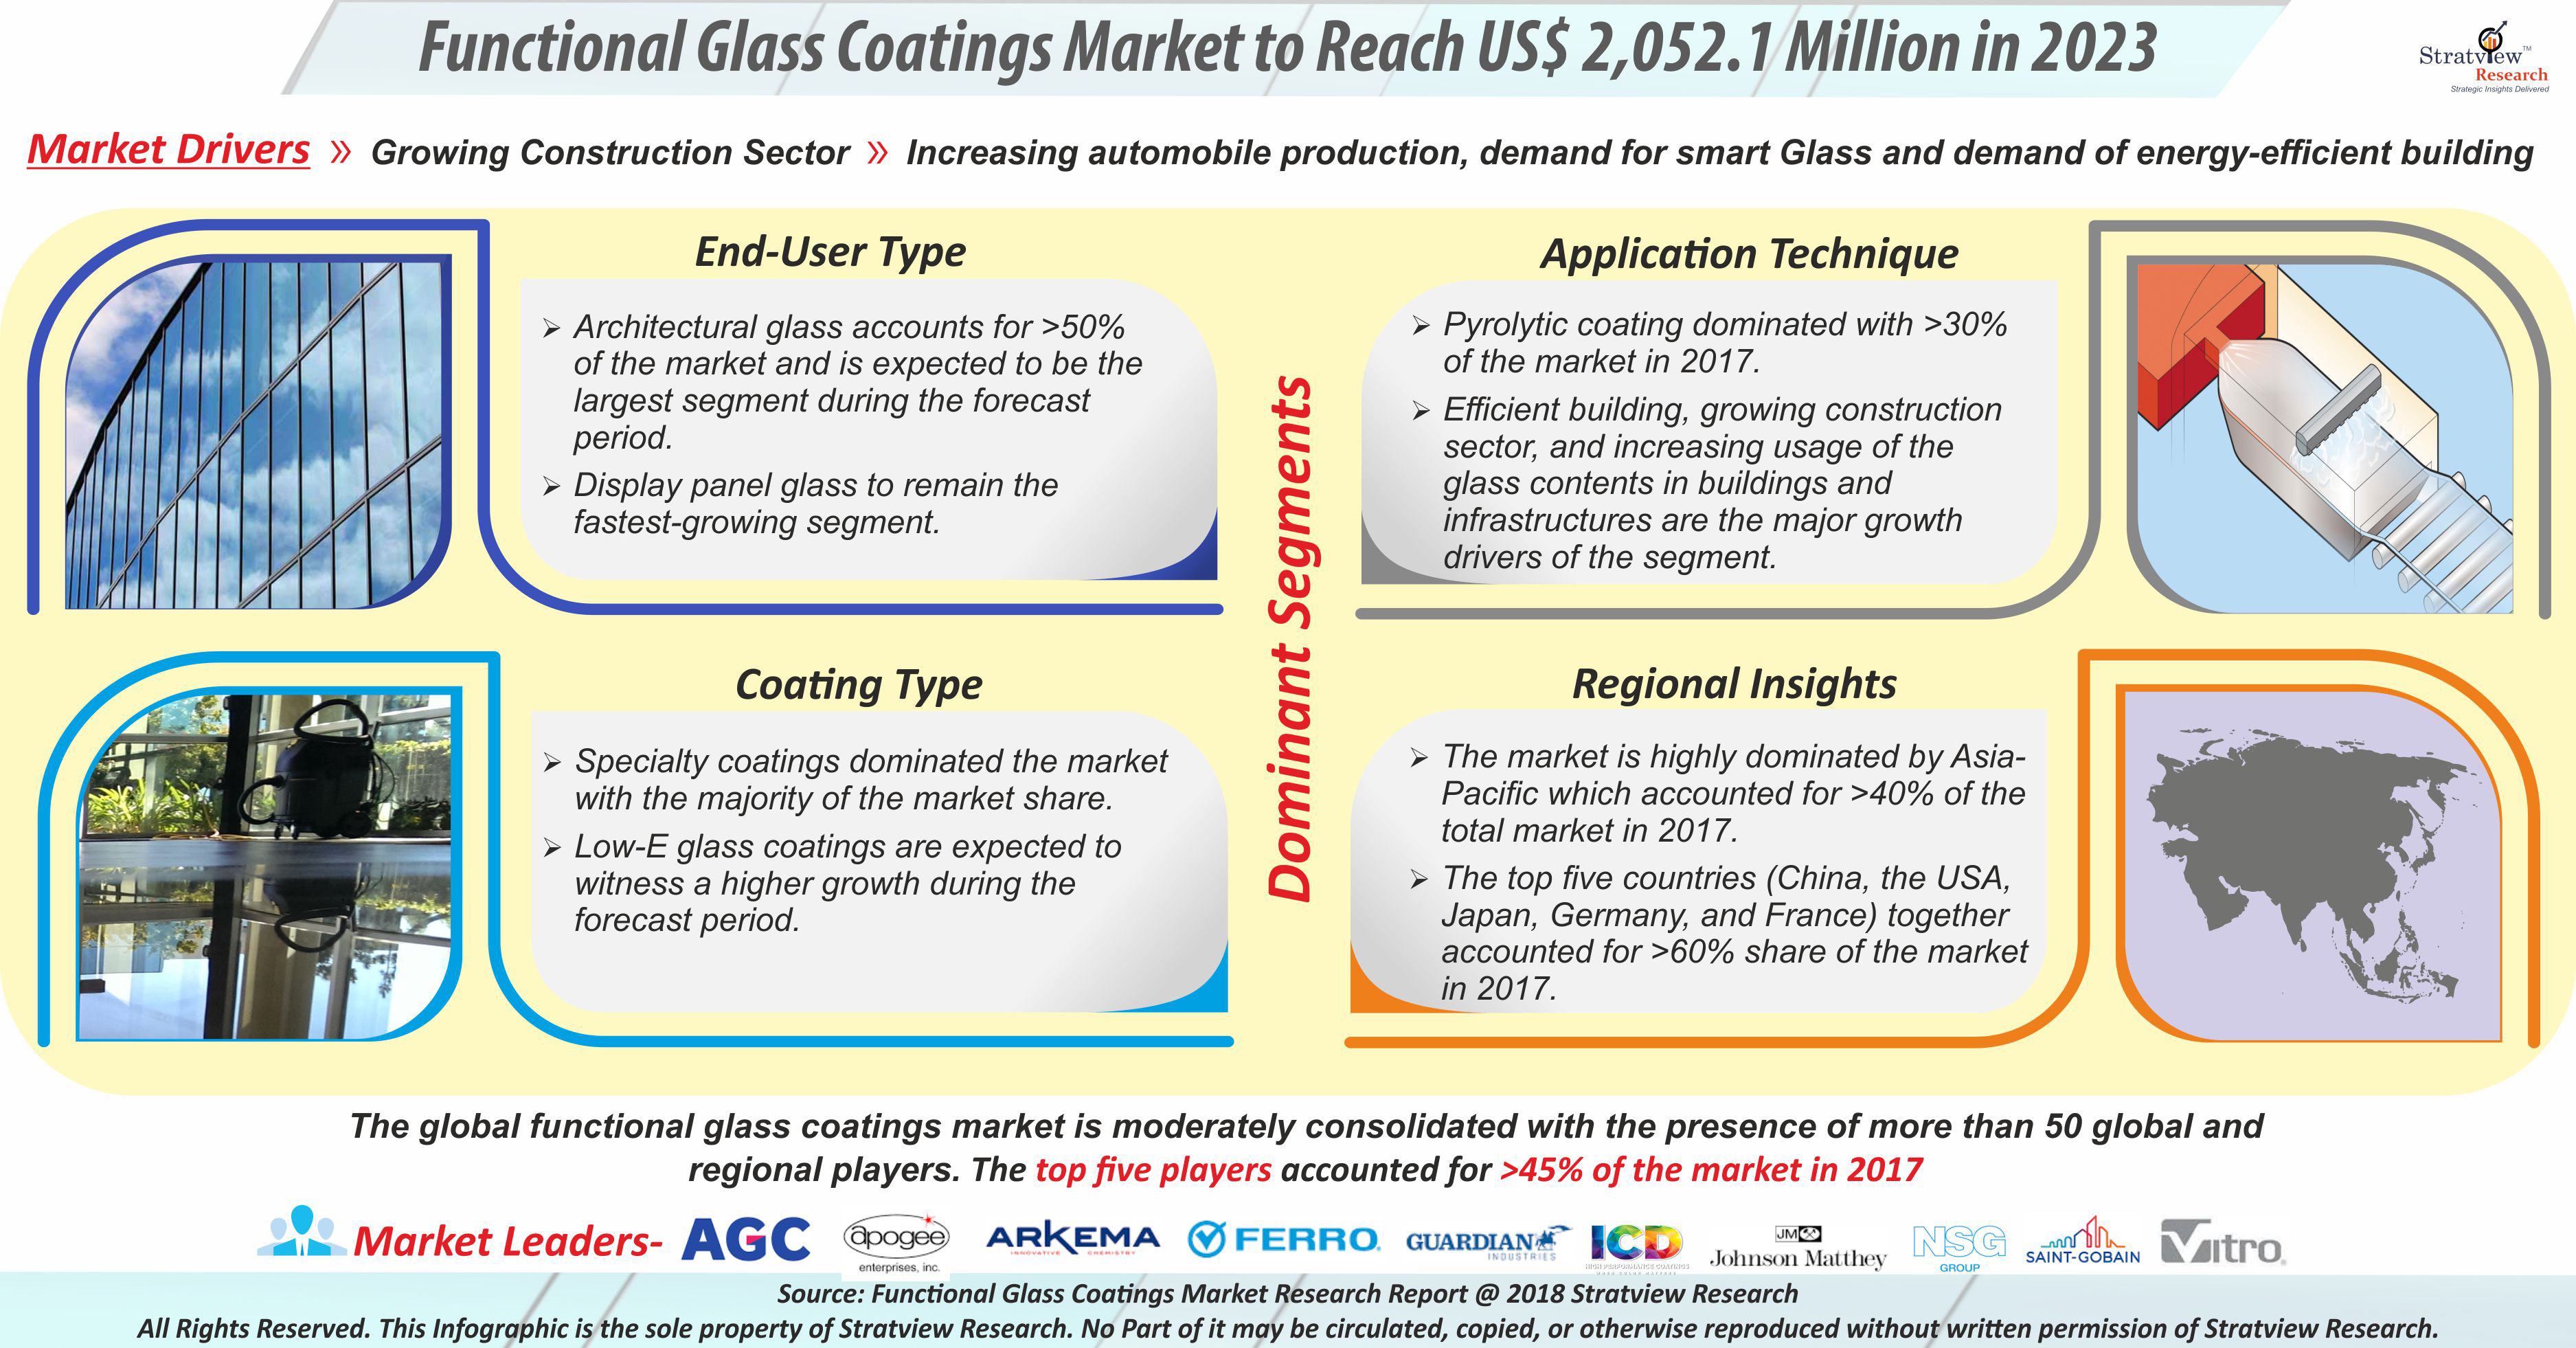 Functional Glass Coatings Market